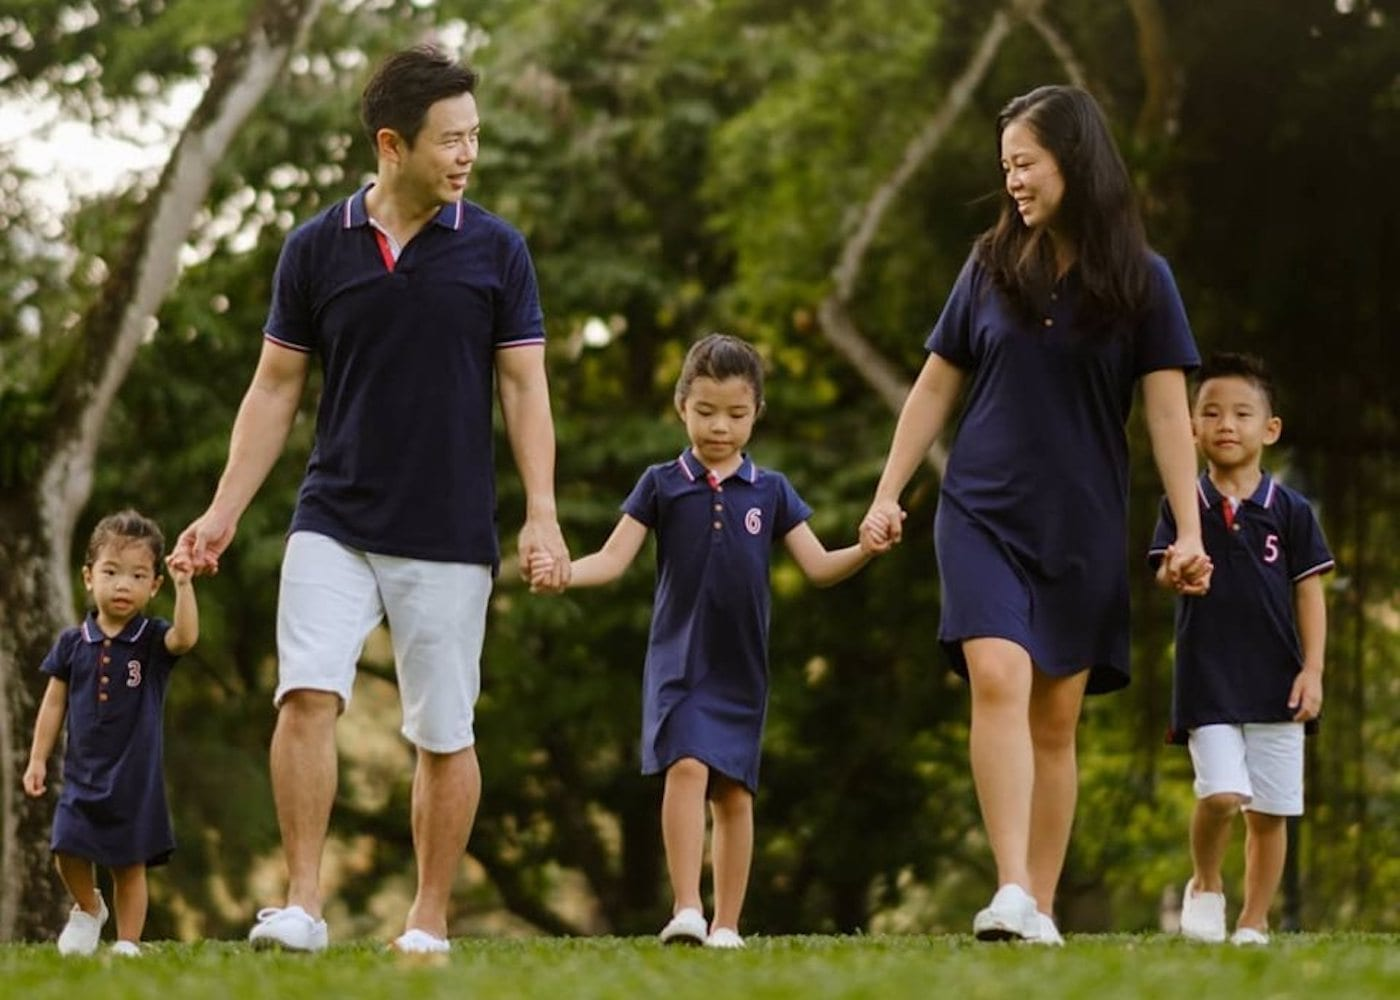 #Twinning: lad and dad, mommy and me matching outfits – Moley Apparels